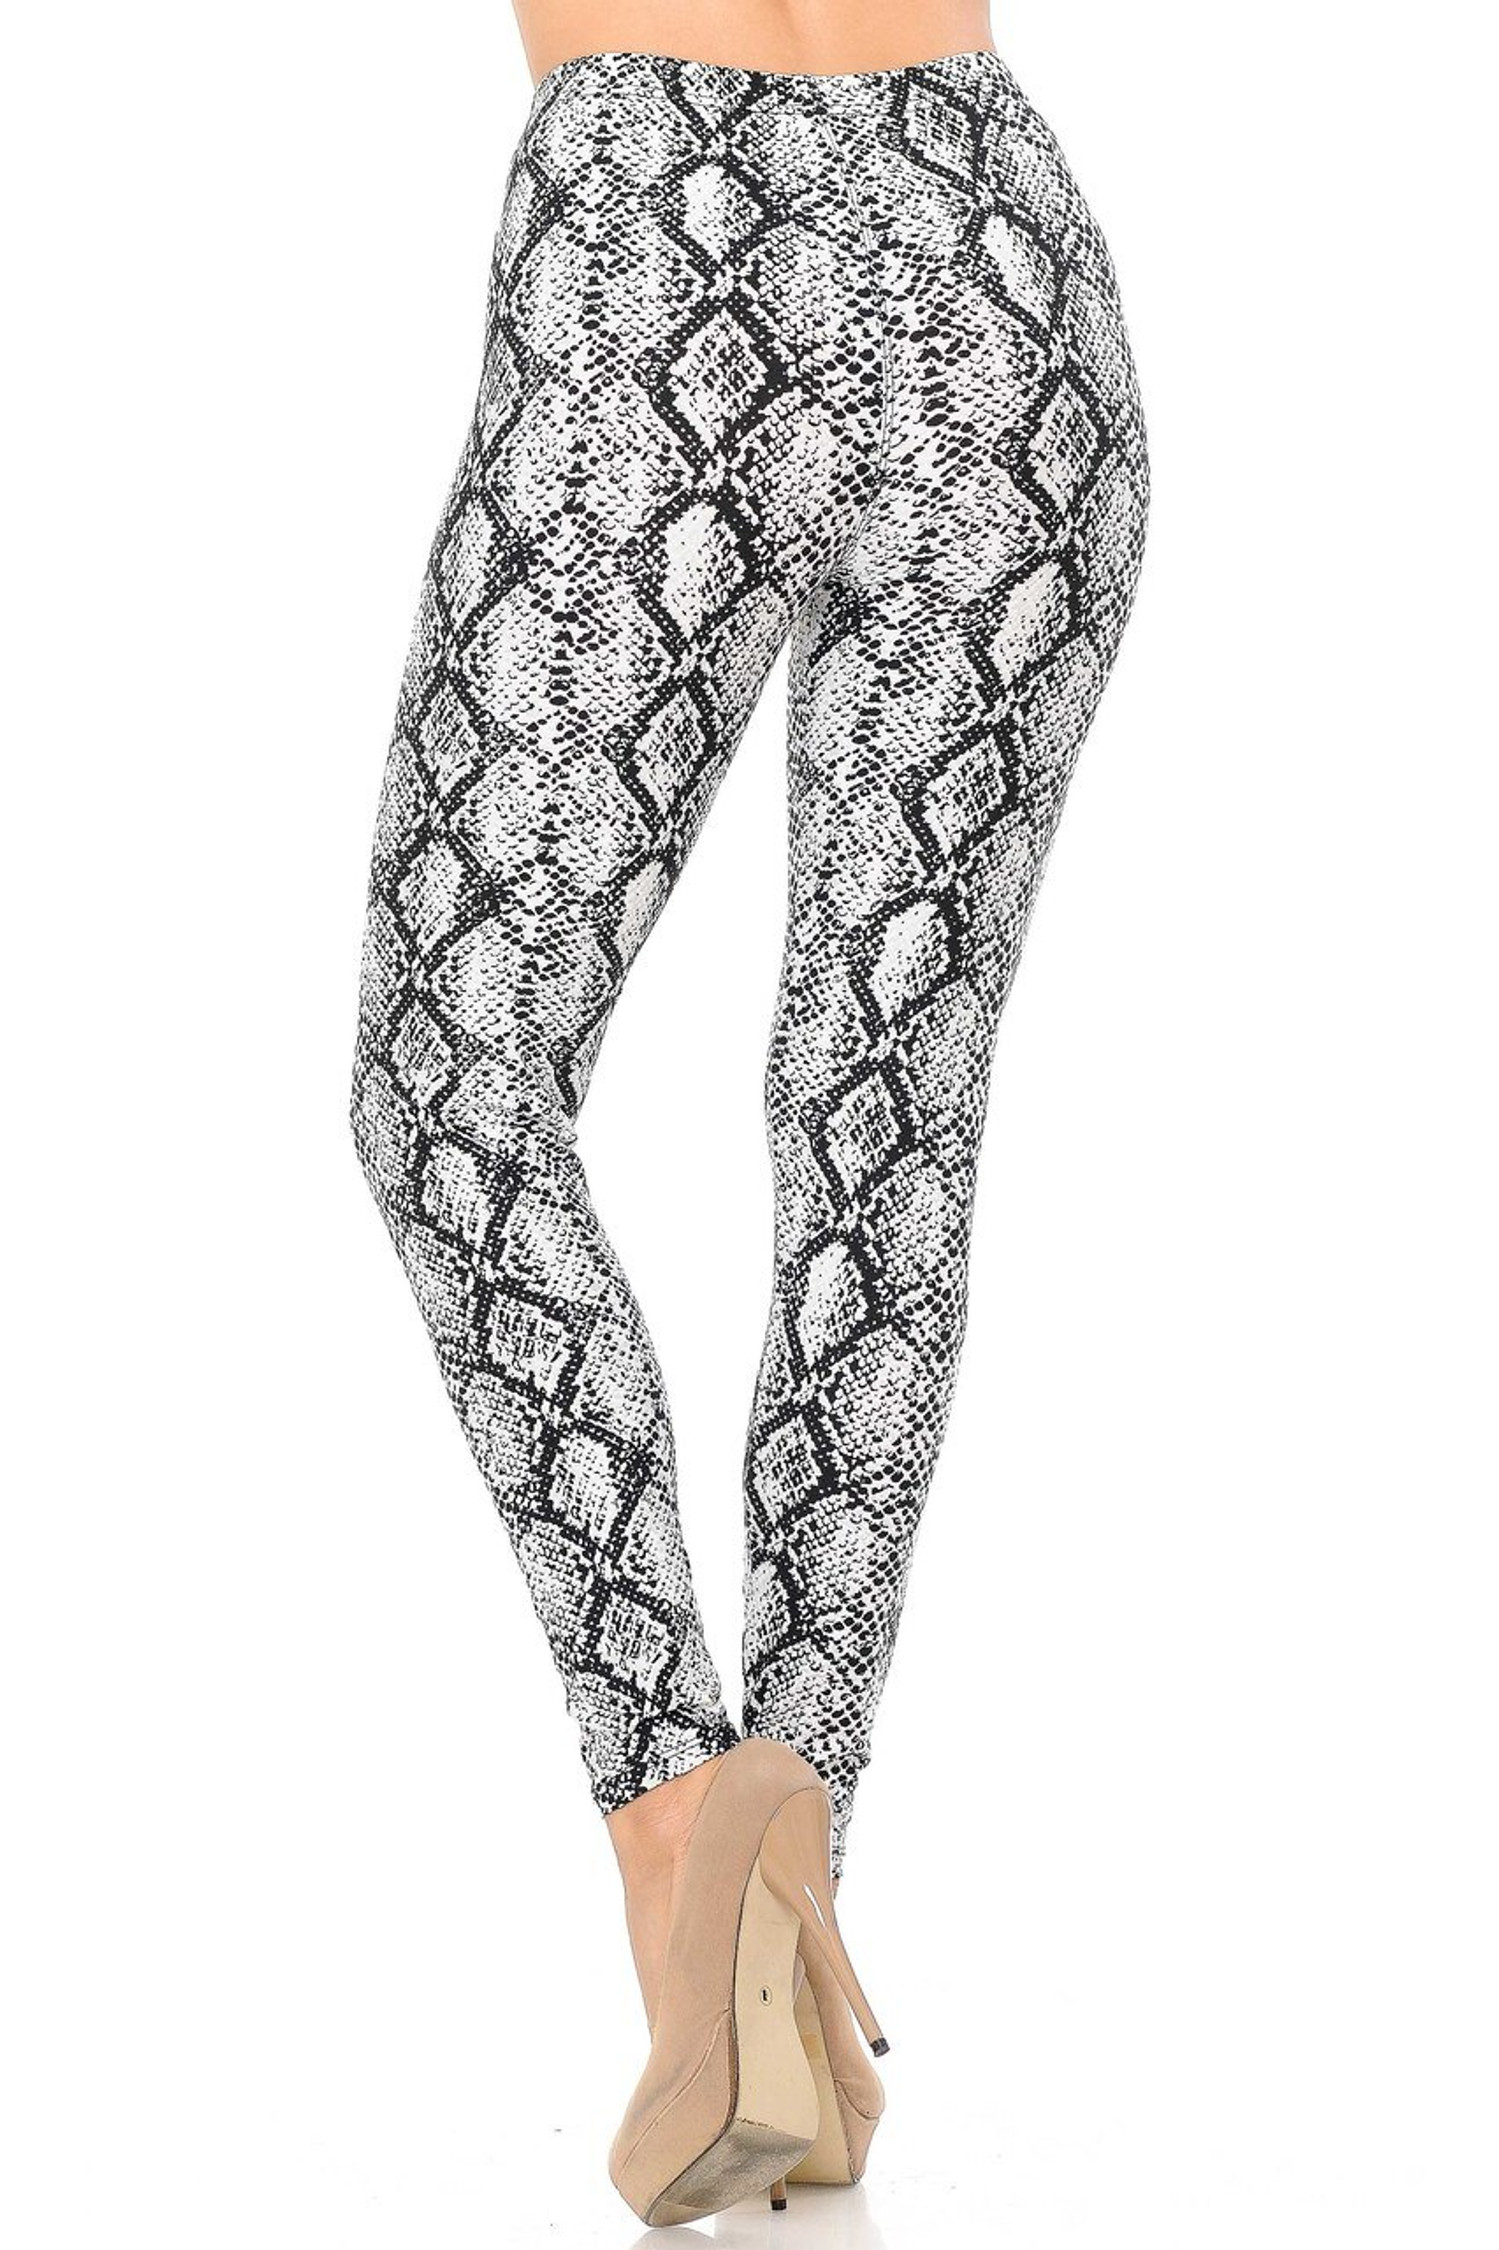 Buttery Soft White Snakeskin Extra Plus Size Leggings - 3X-5X